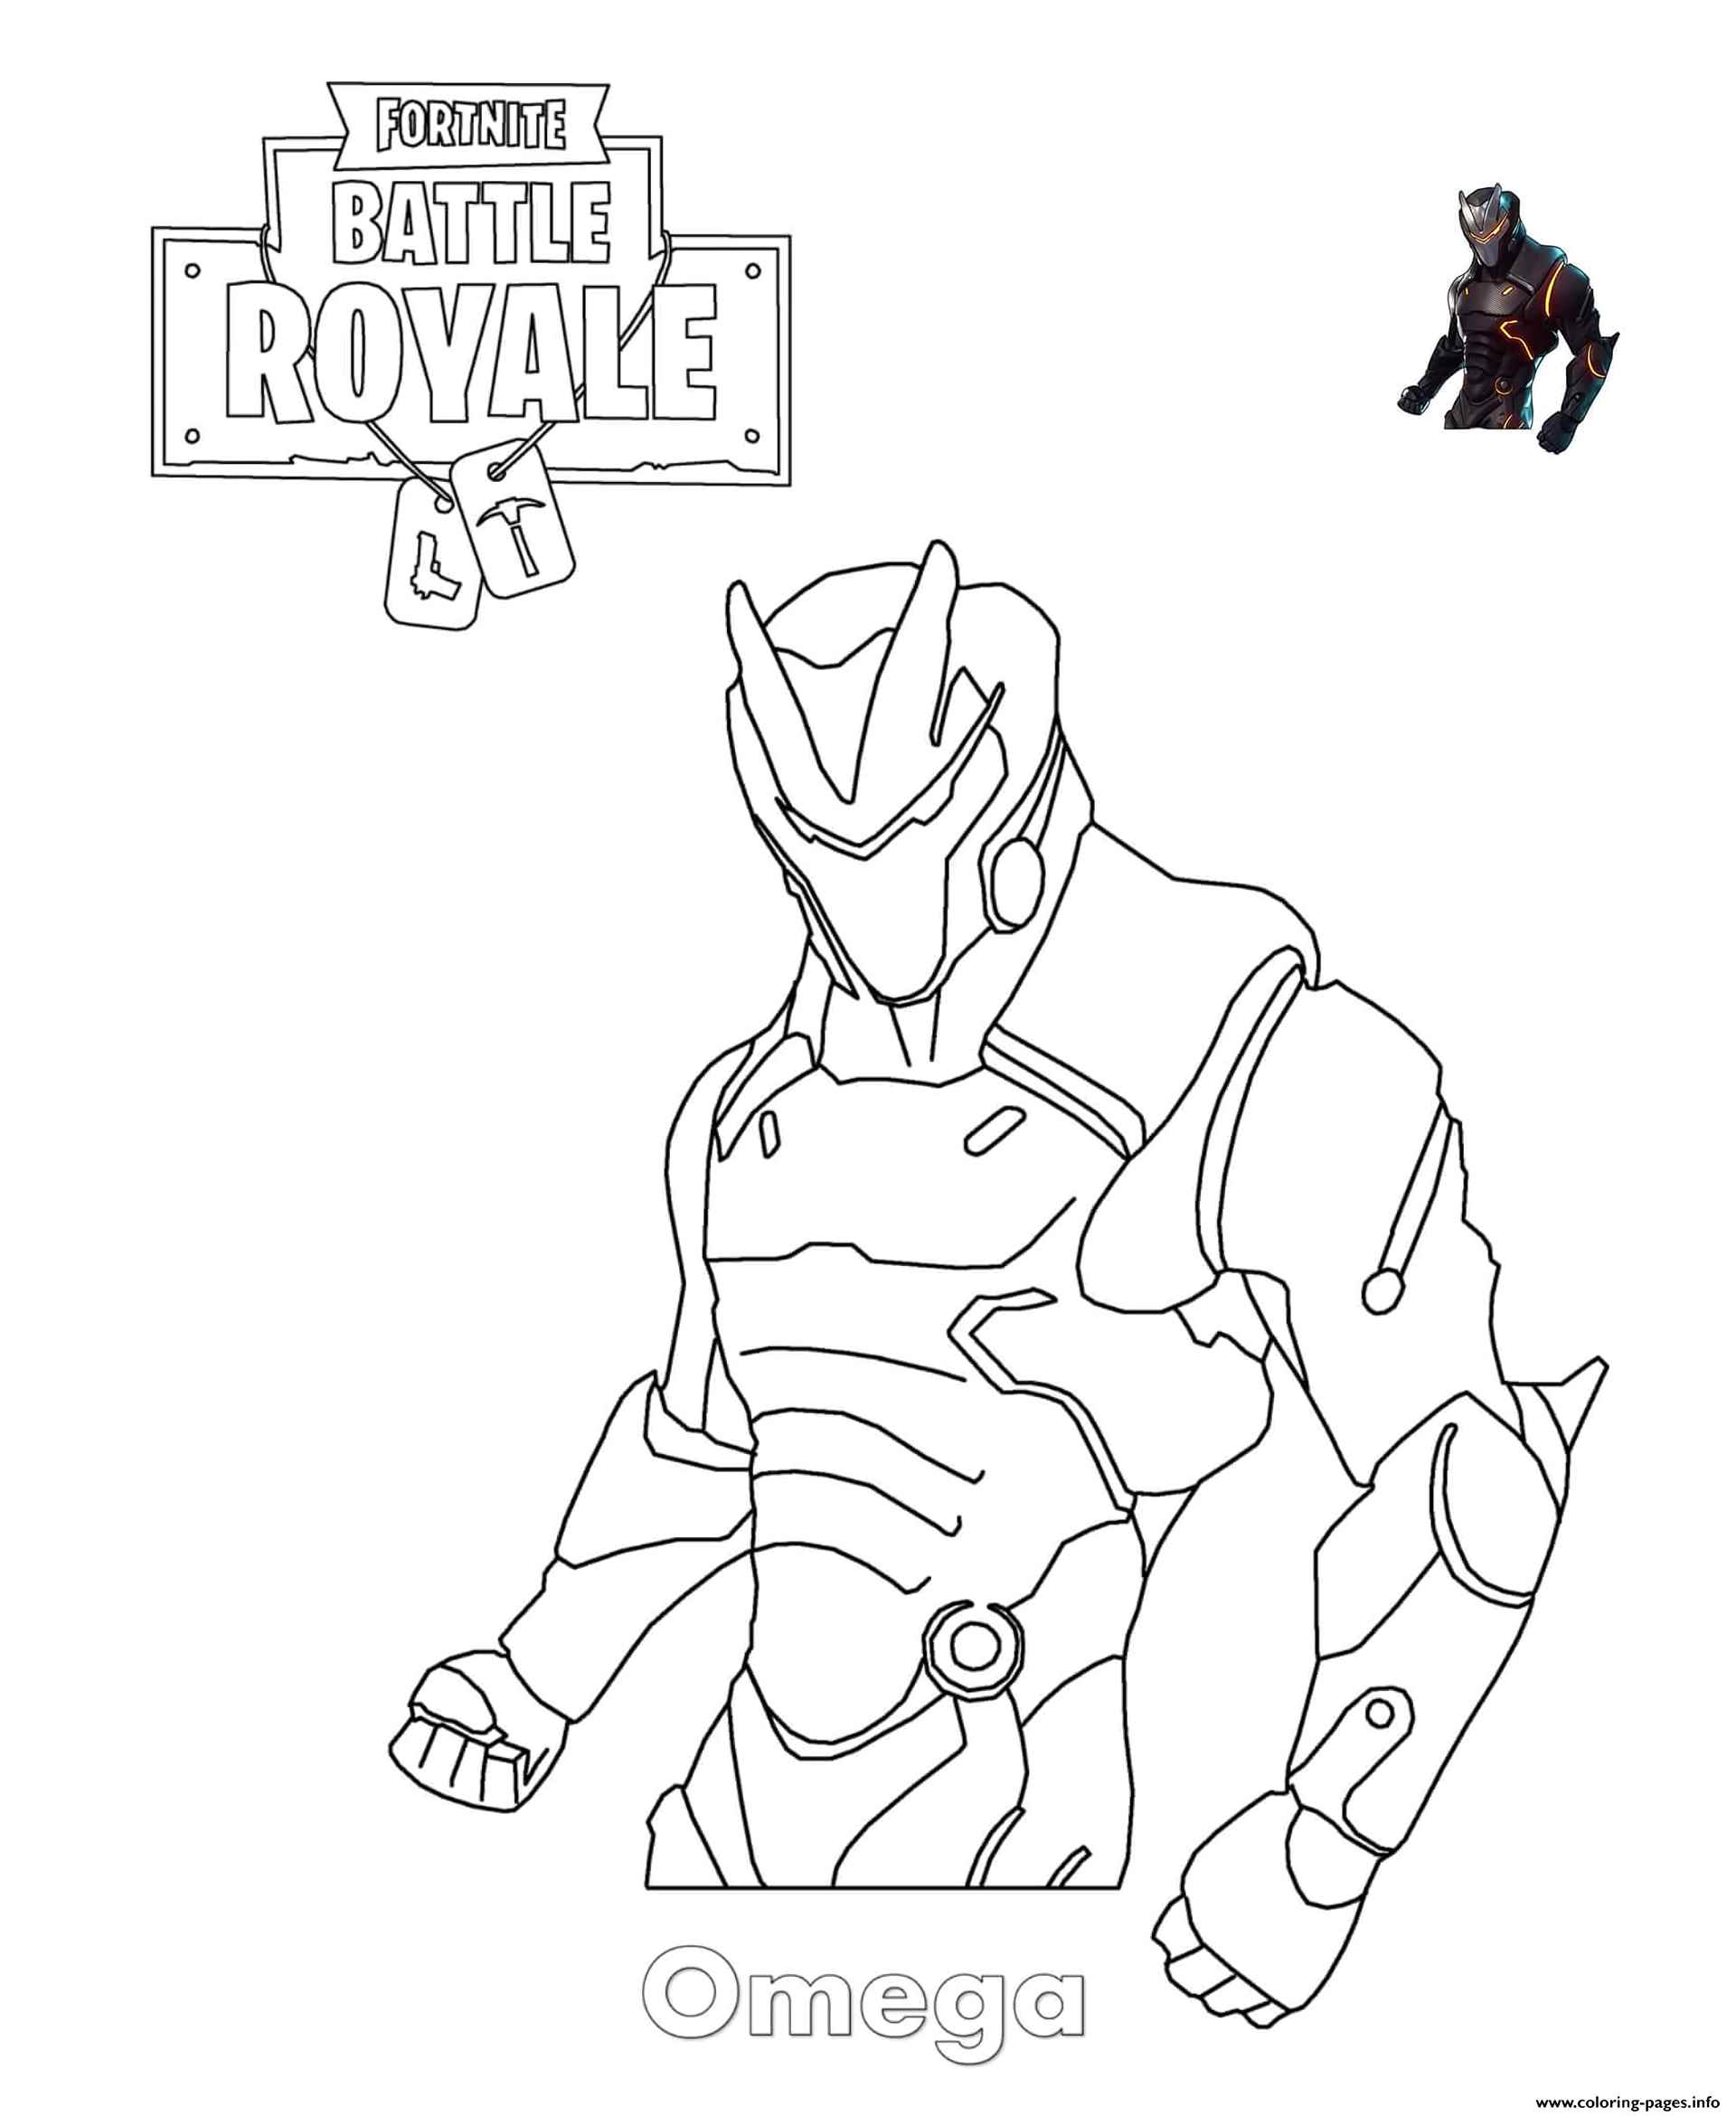 Angry Omega Skin Fortnite Coloring Page